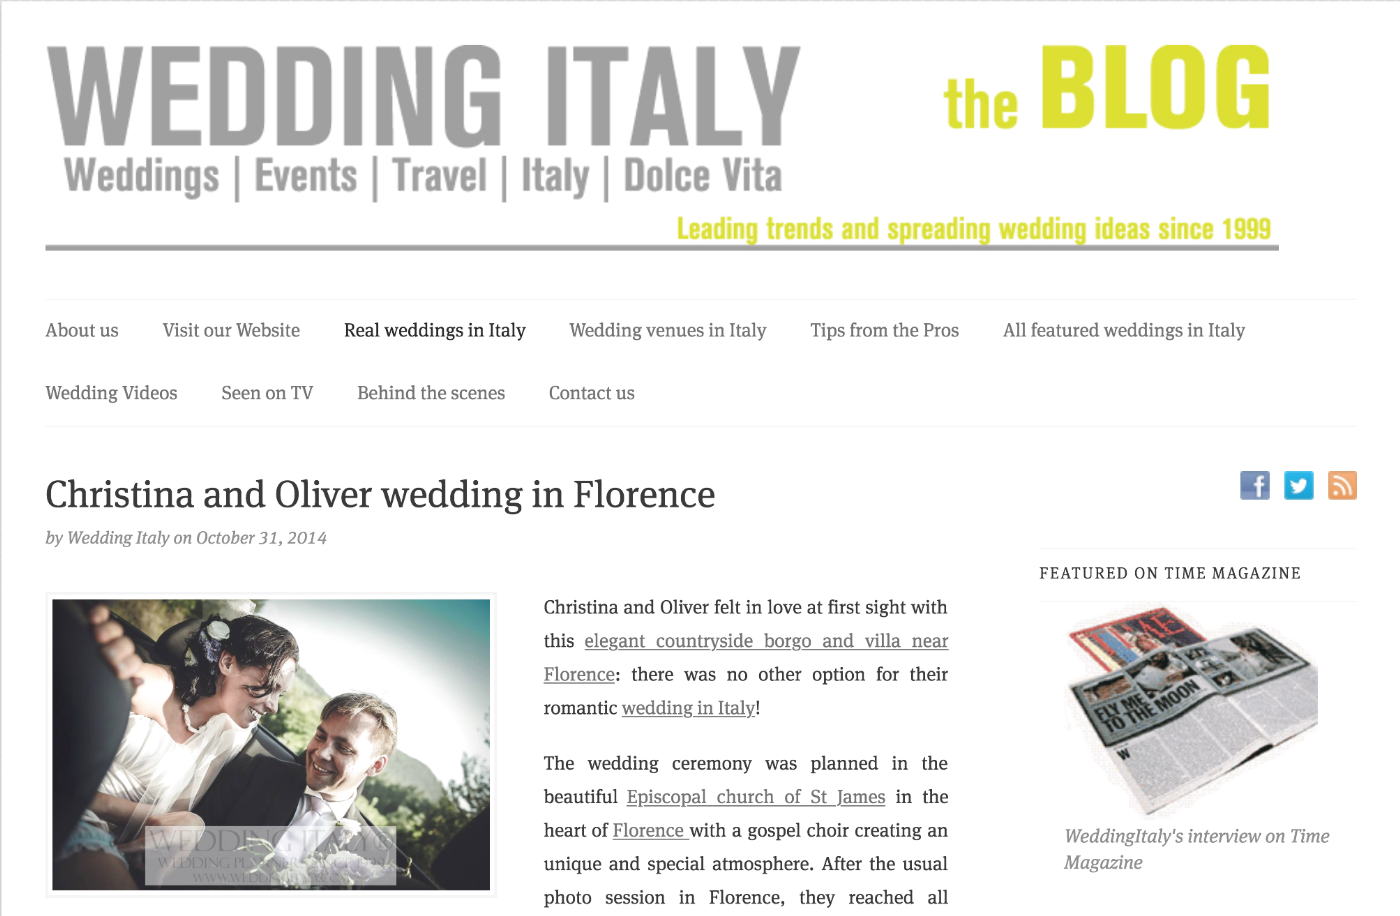 Wedding Italy | The Blog